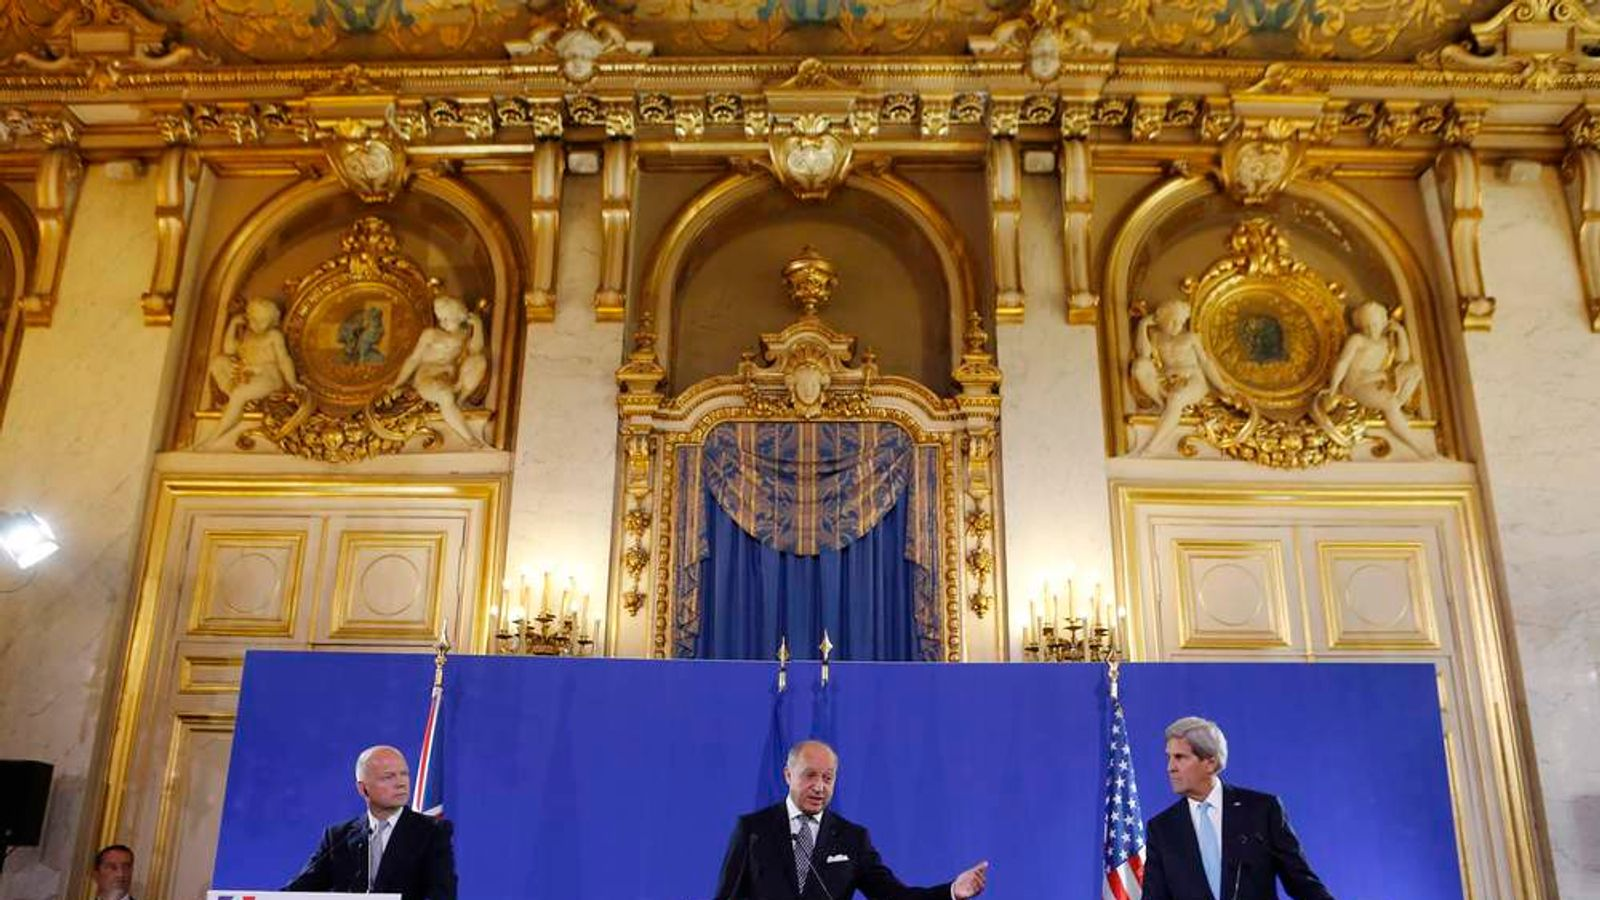 U.S. Secretary of State Kerry and British Foreign Secretary Hague listen to French FM Fabius speak at a news conference at the Quai d'Orsay in Paris